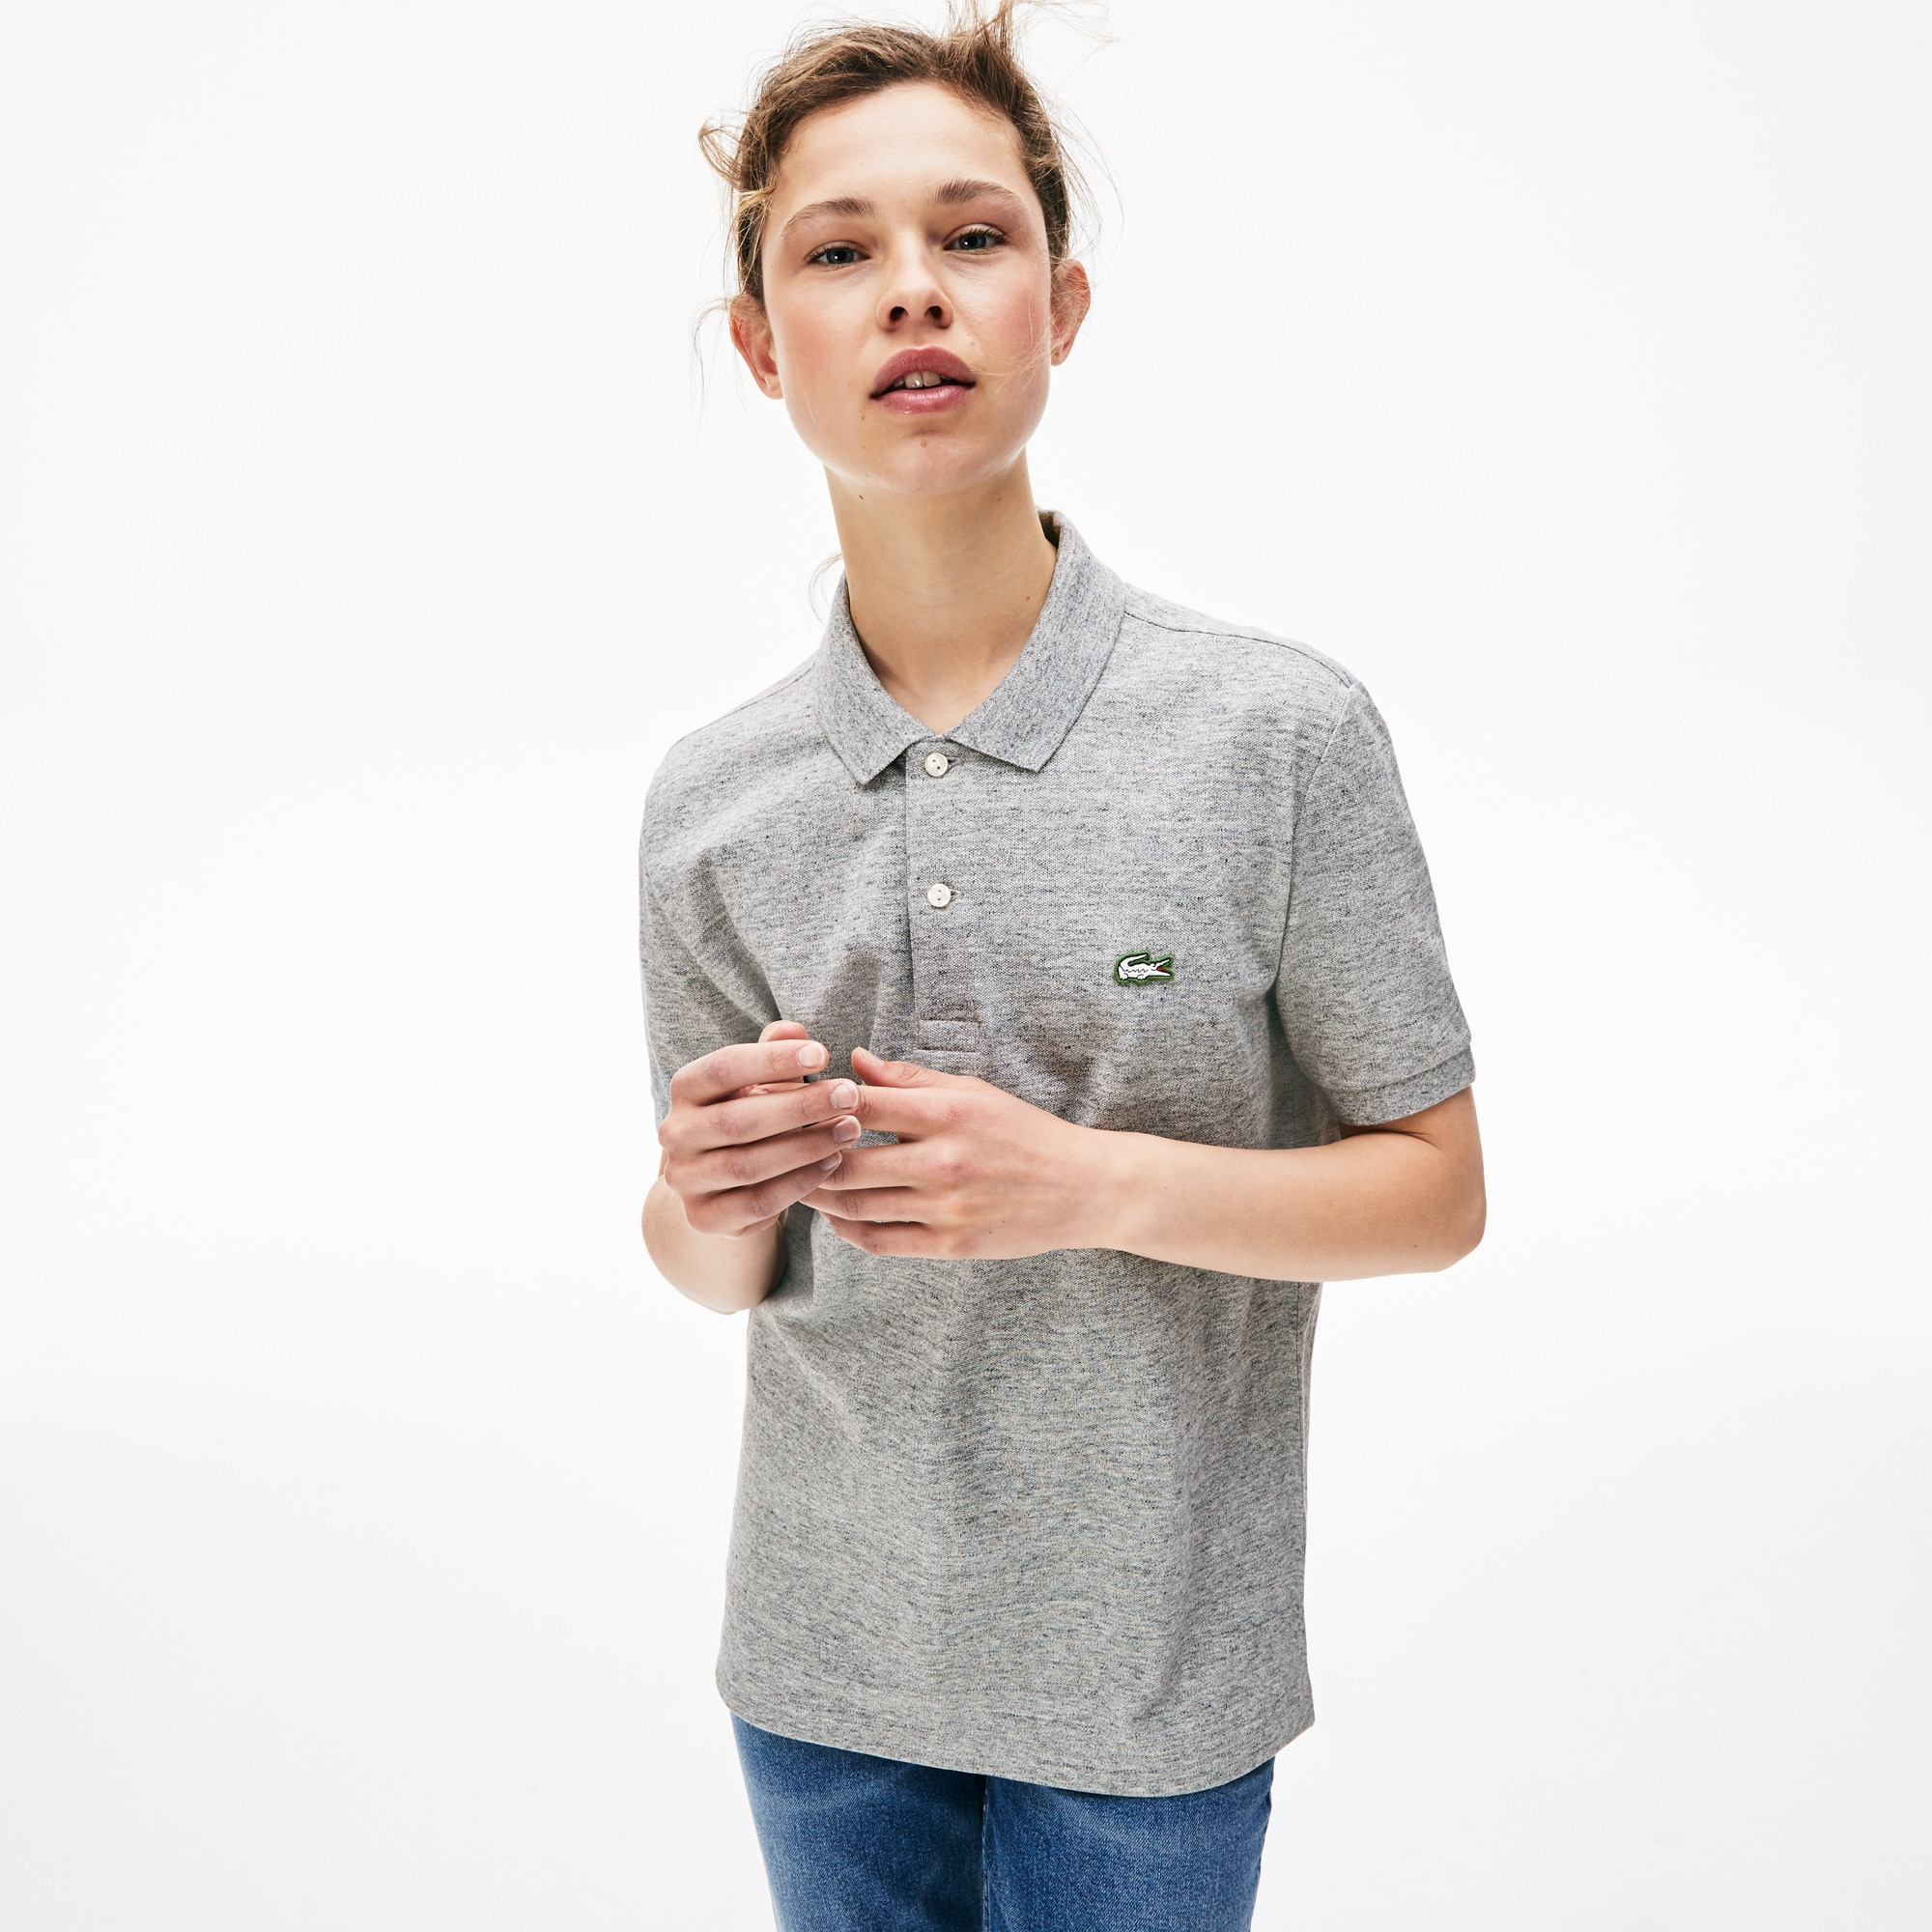 Unisex LIVE Slim Fit Petit Piqué Polo Shirt